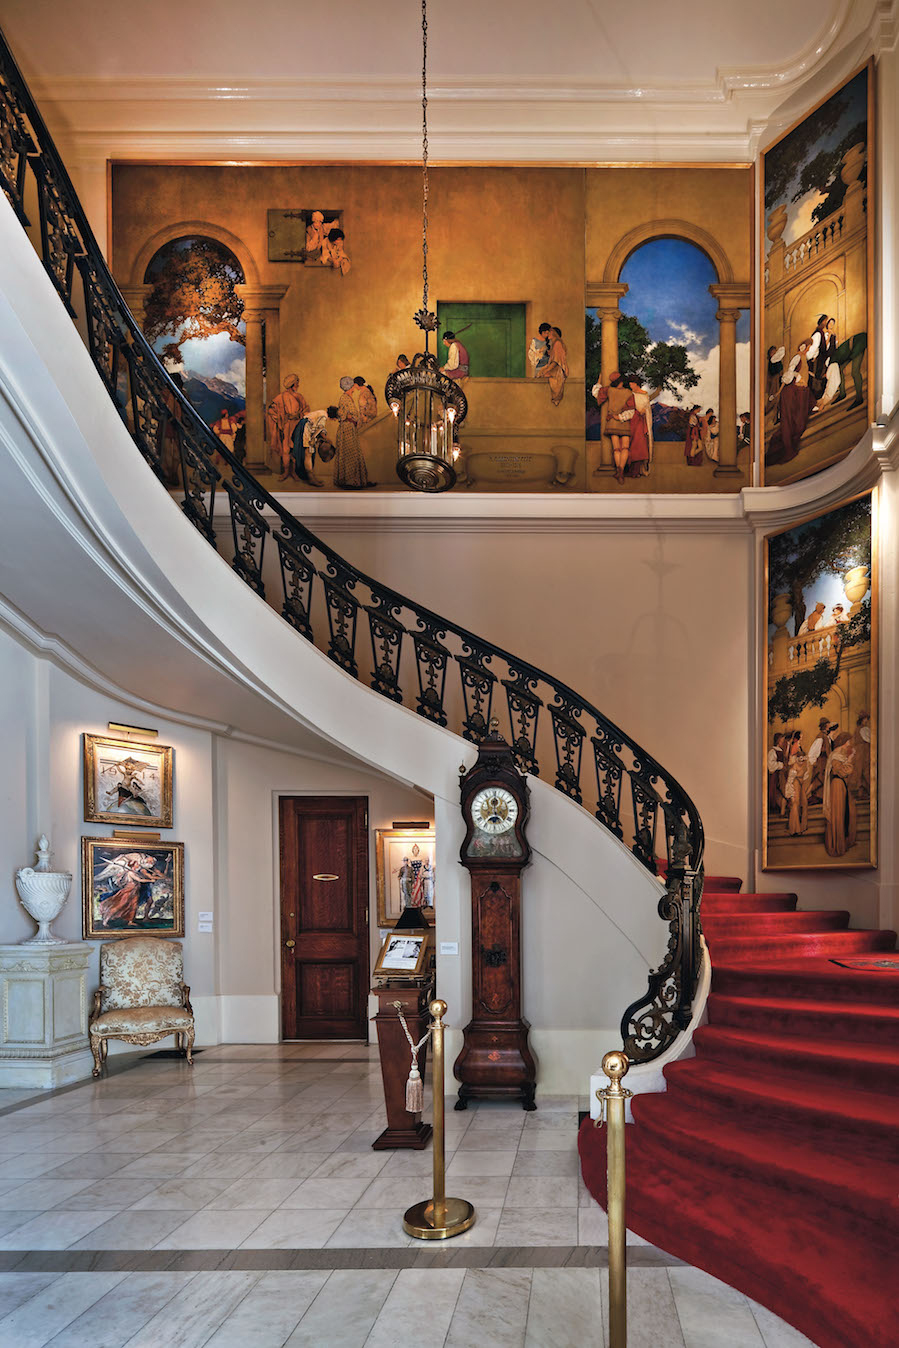 """The """"Romance Staircase"""" in the Marble Hall of the NMAI, modeled after the  Petit Trianon  (1762) at Versailles.  © 2016 National Museum of American Illustration, Newport, RI. www.AmericanIllustration.org ."""